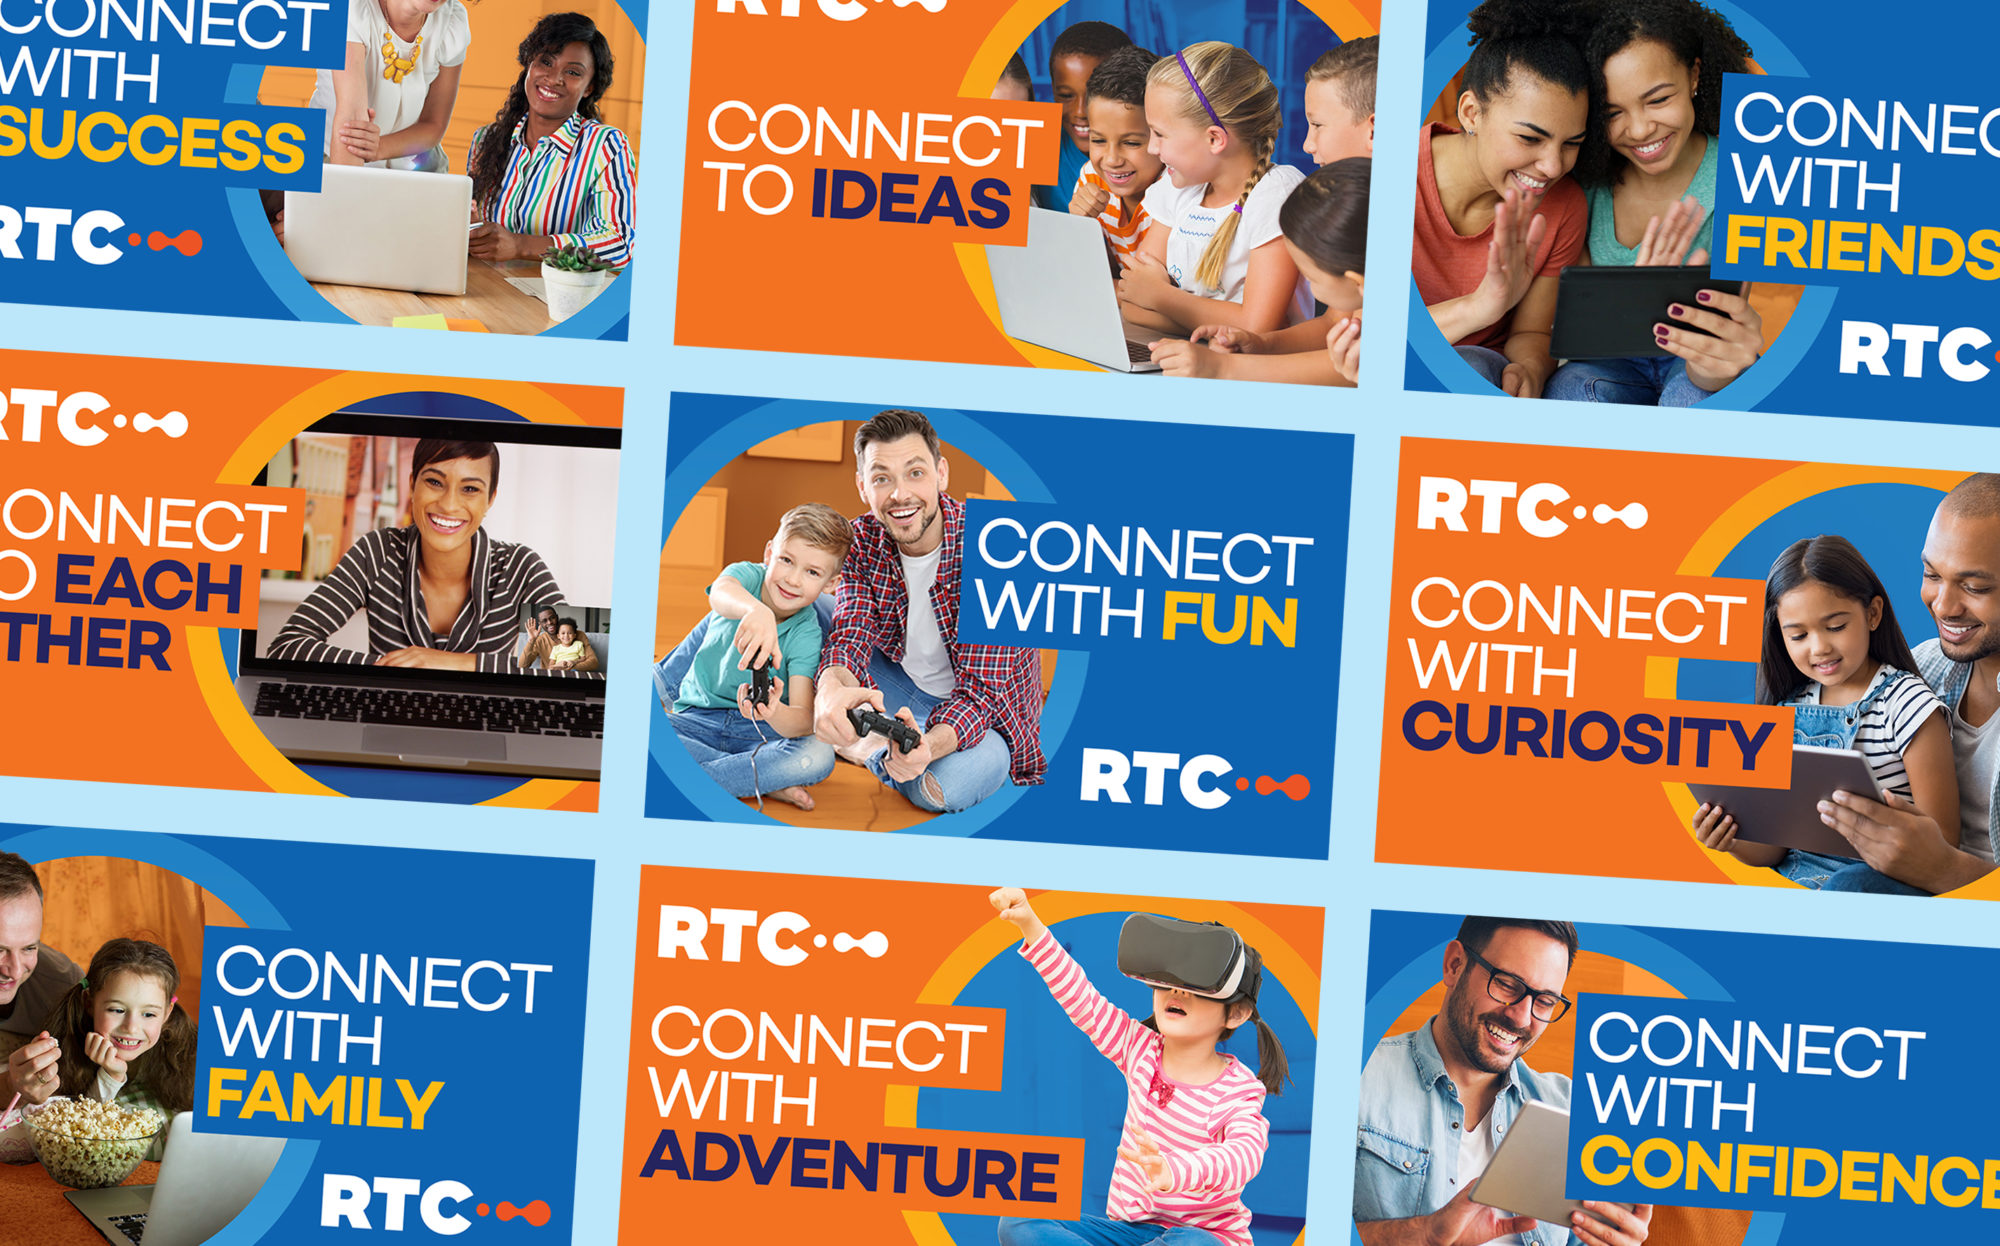 RTC Connect Campaign